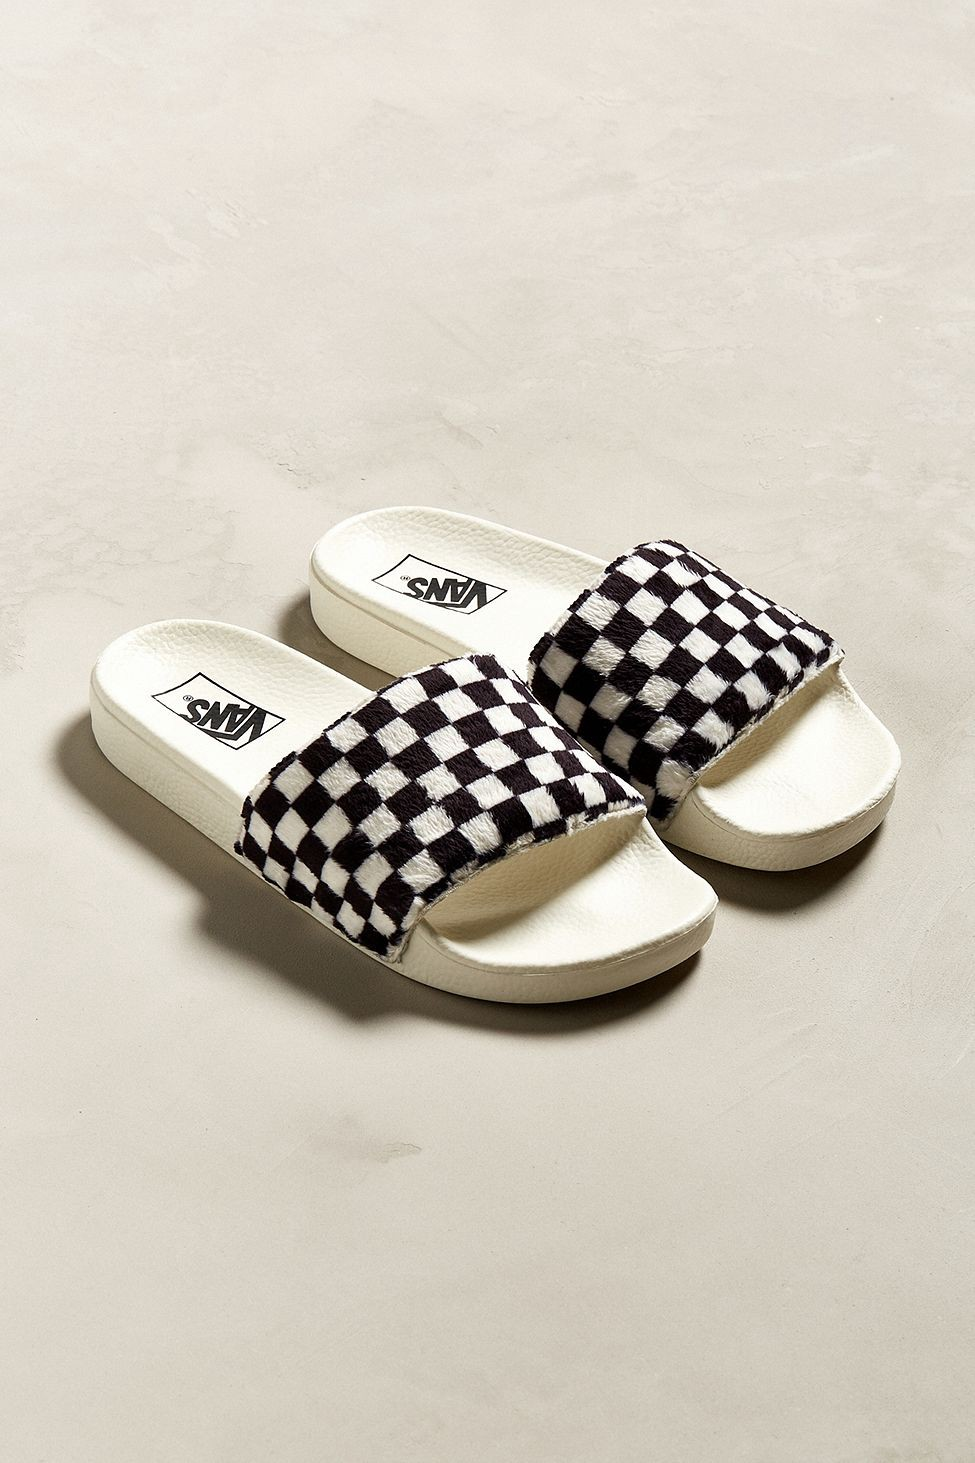 d3140836307 Urban Outfitters Vans Slide-On Checkerboard Sherpa Sandal - M 12 W 13.5